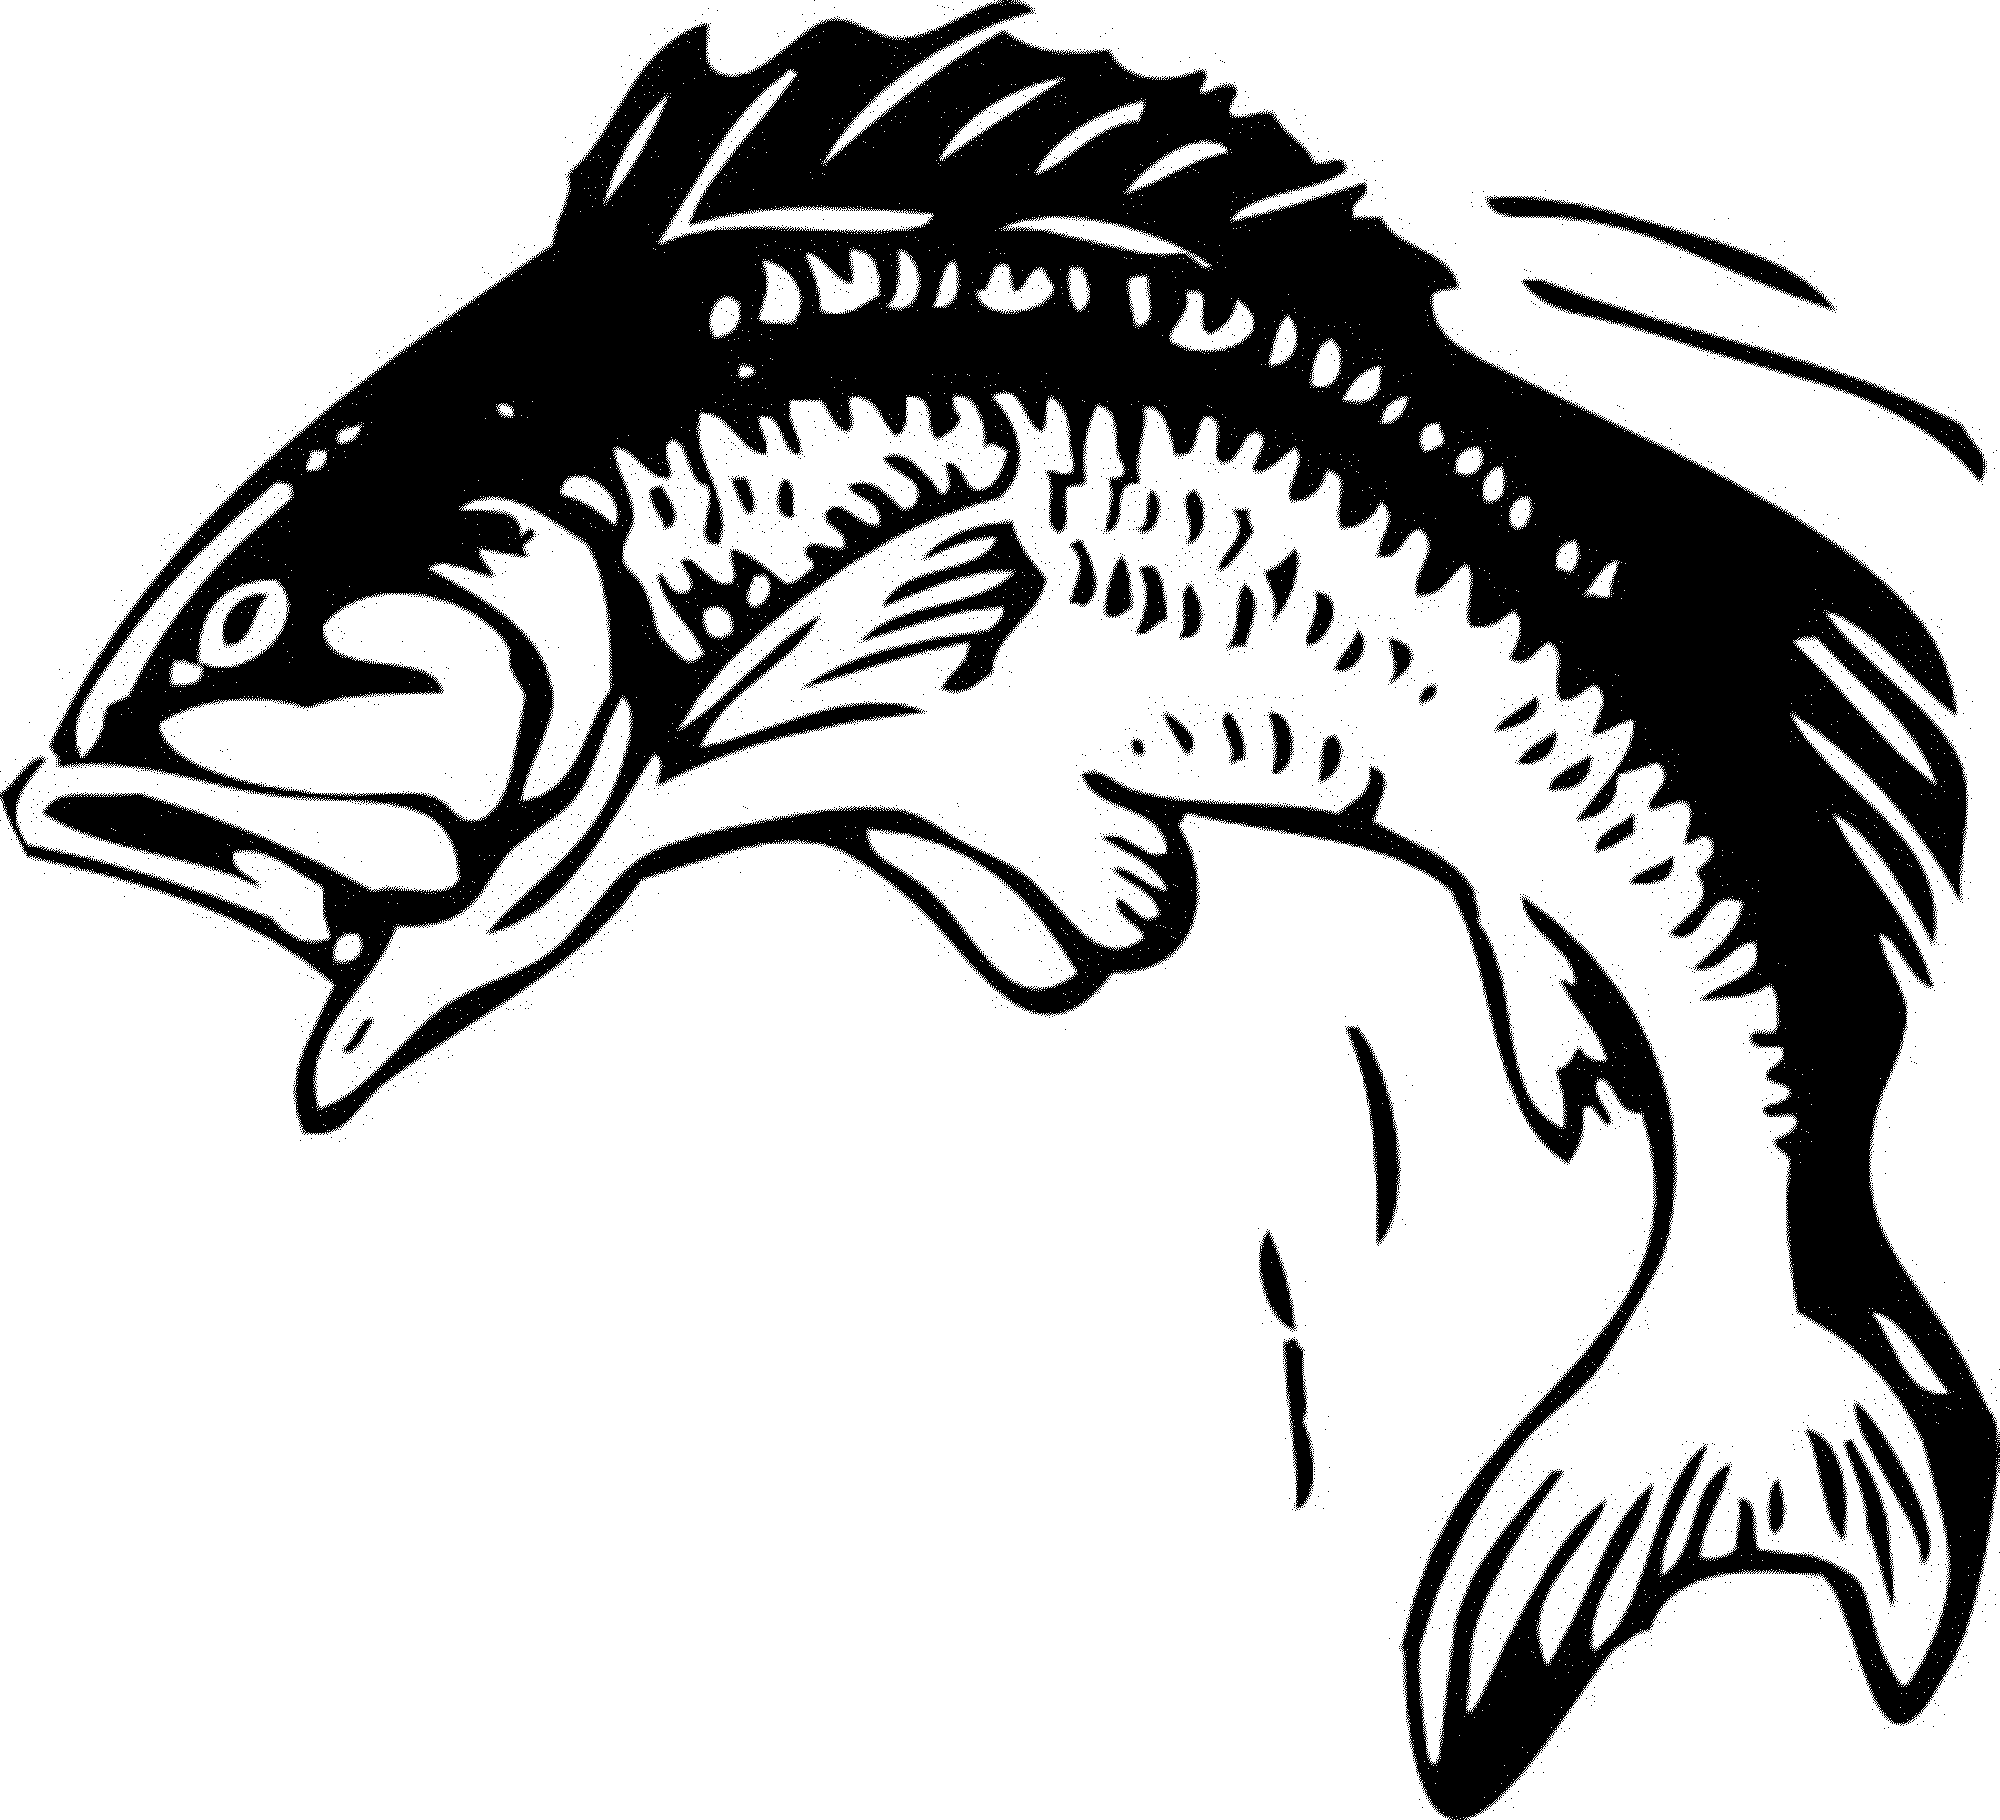 ocean-fish-coloring-pages | | BestAppsForKids.com